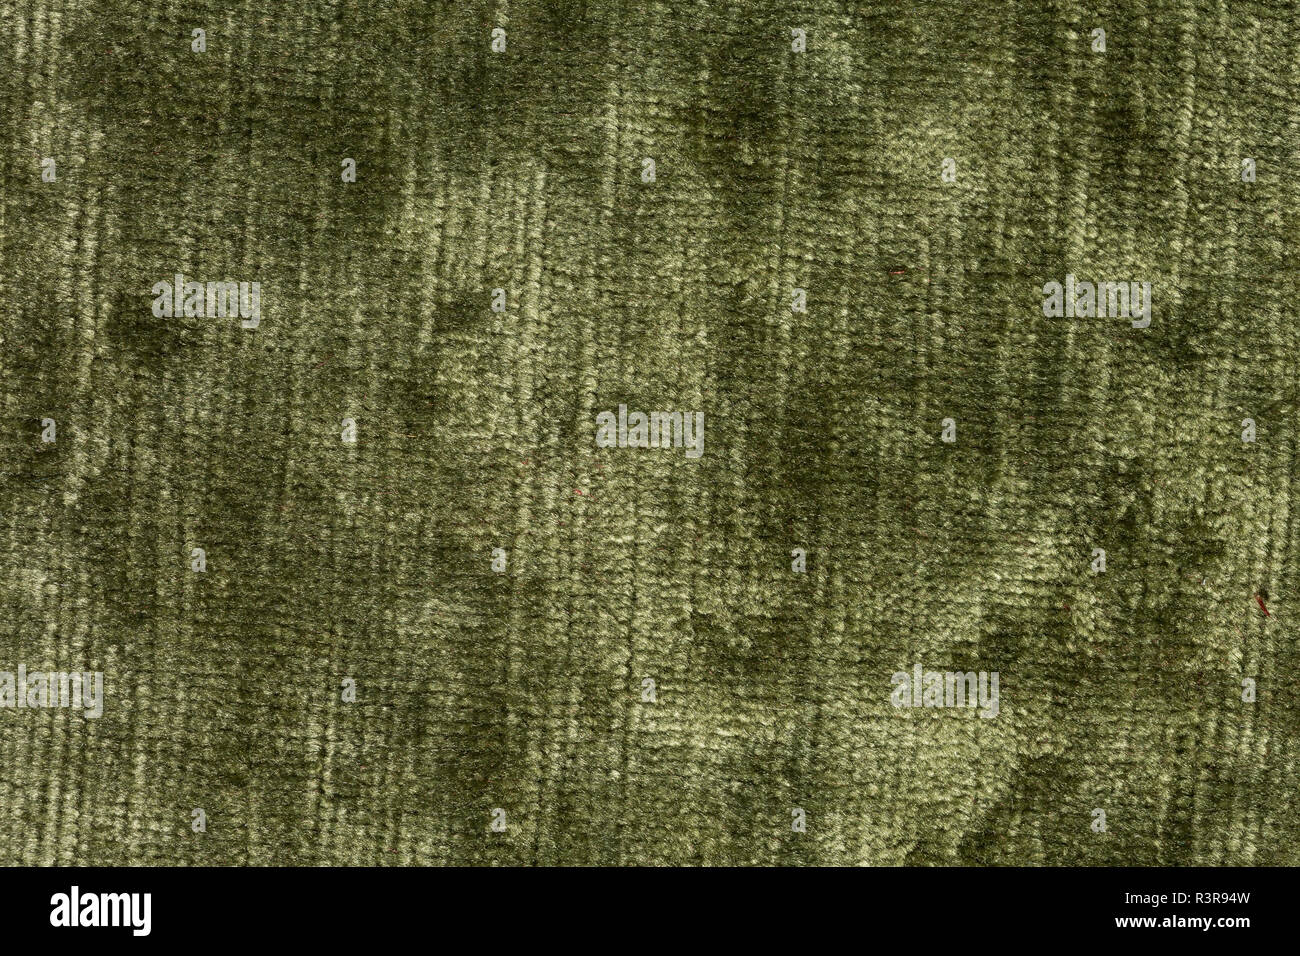 Shiny Light Green Velvet Texture On Macro Stock Photo Alamy